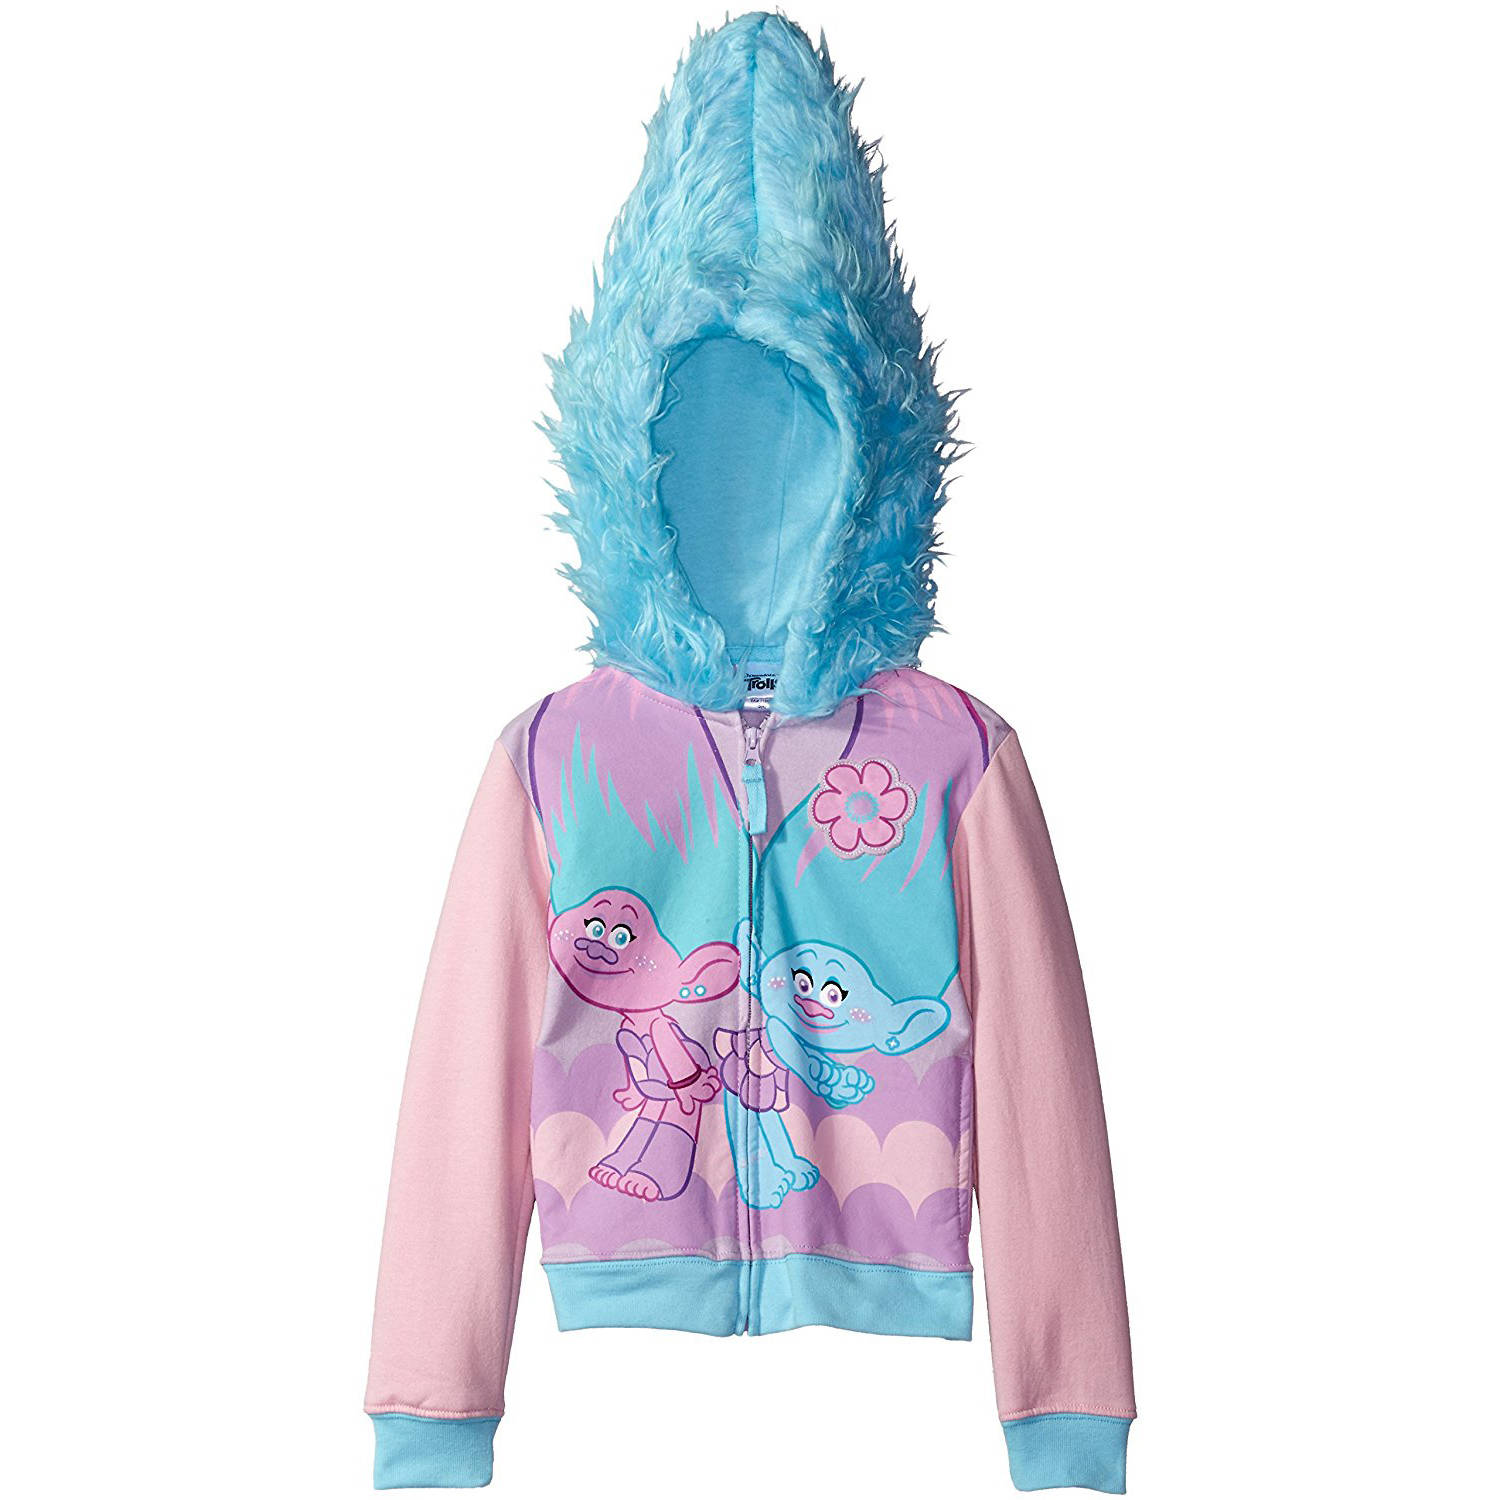 Satin and Chenille Girls' Costume Zip-Up Hoodie with Faux Fur